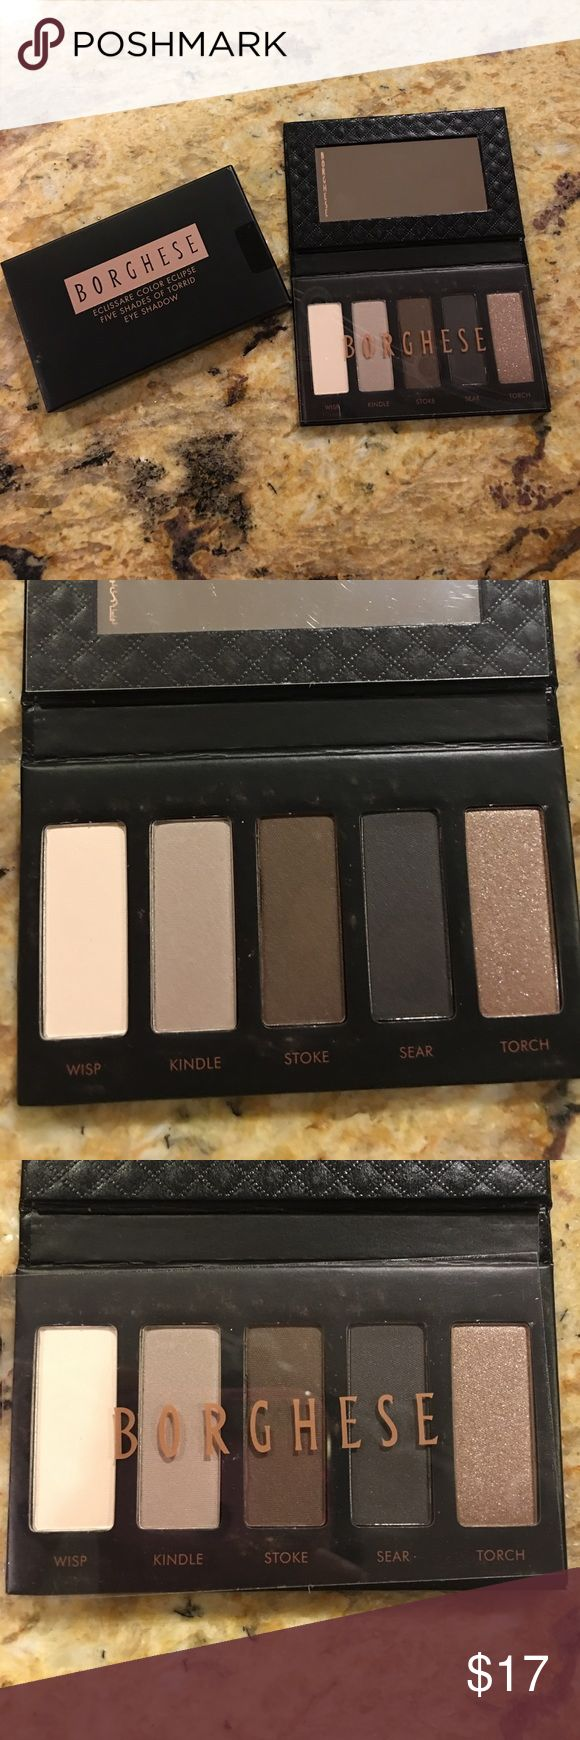 Borghese eyeshadow palette New in box-never used. Five shades of torrid eye shadow.. great colors..Accepting offers. bundle and save. Borghese Makeup Eyeshadow